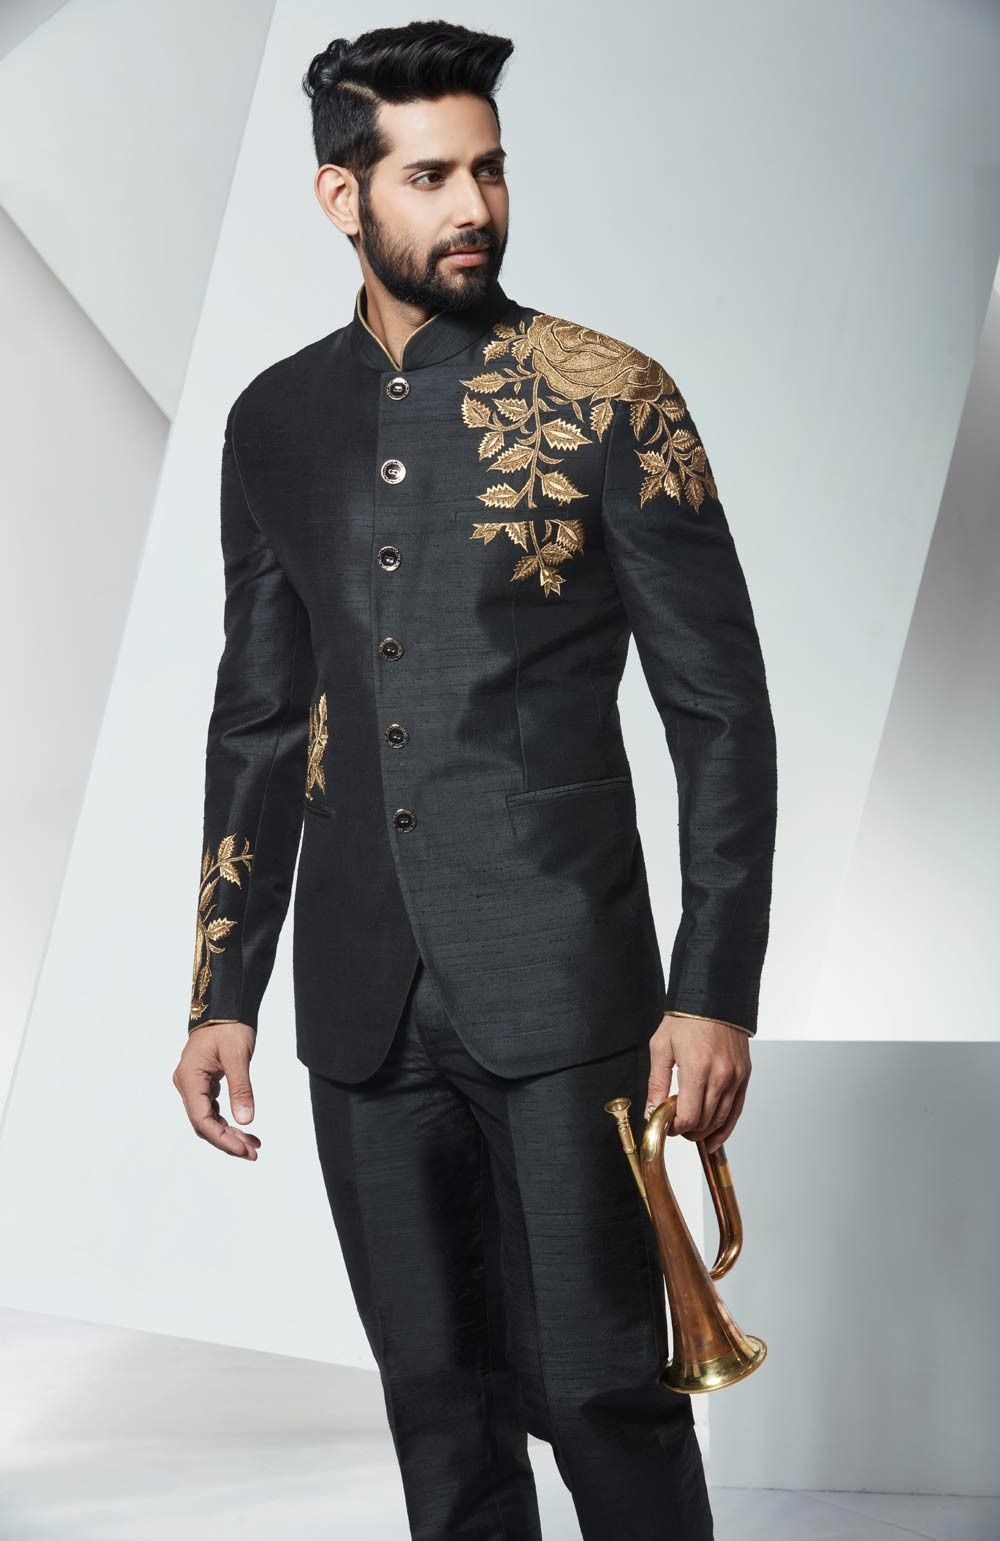 Suits For Men Online Suits For Every Event Parivar Ceremony